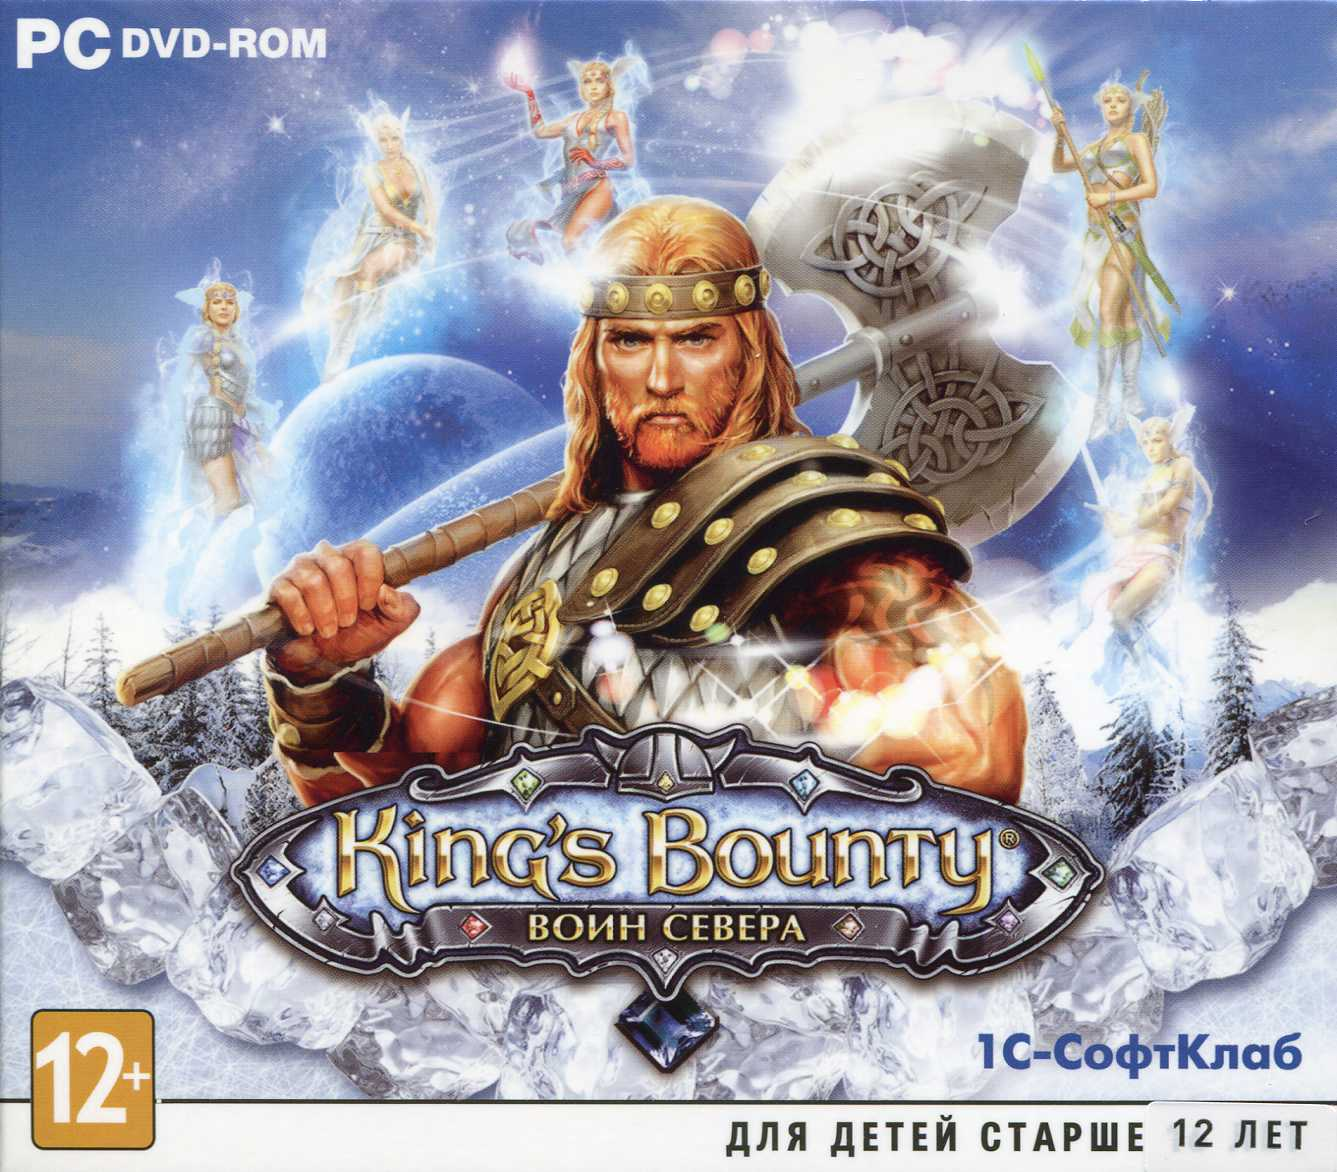 KING'S BOUNTY: THE WARRIOR OF THE NORTH - STEAM + GIFT